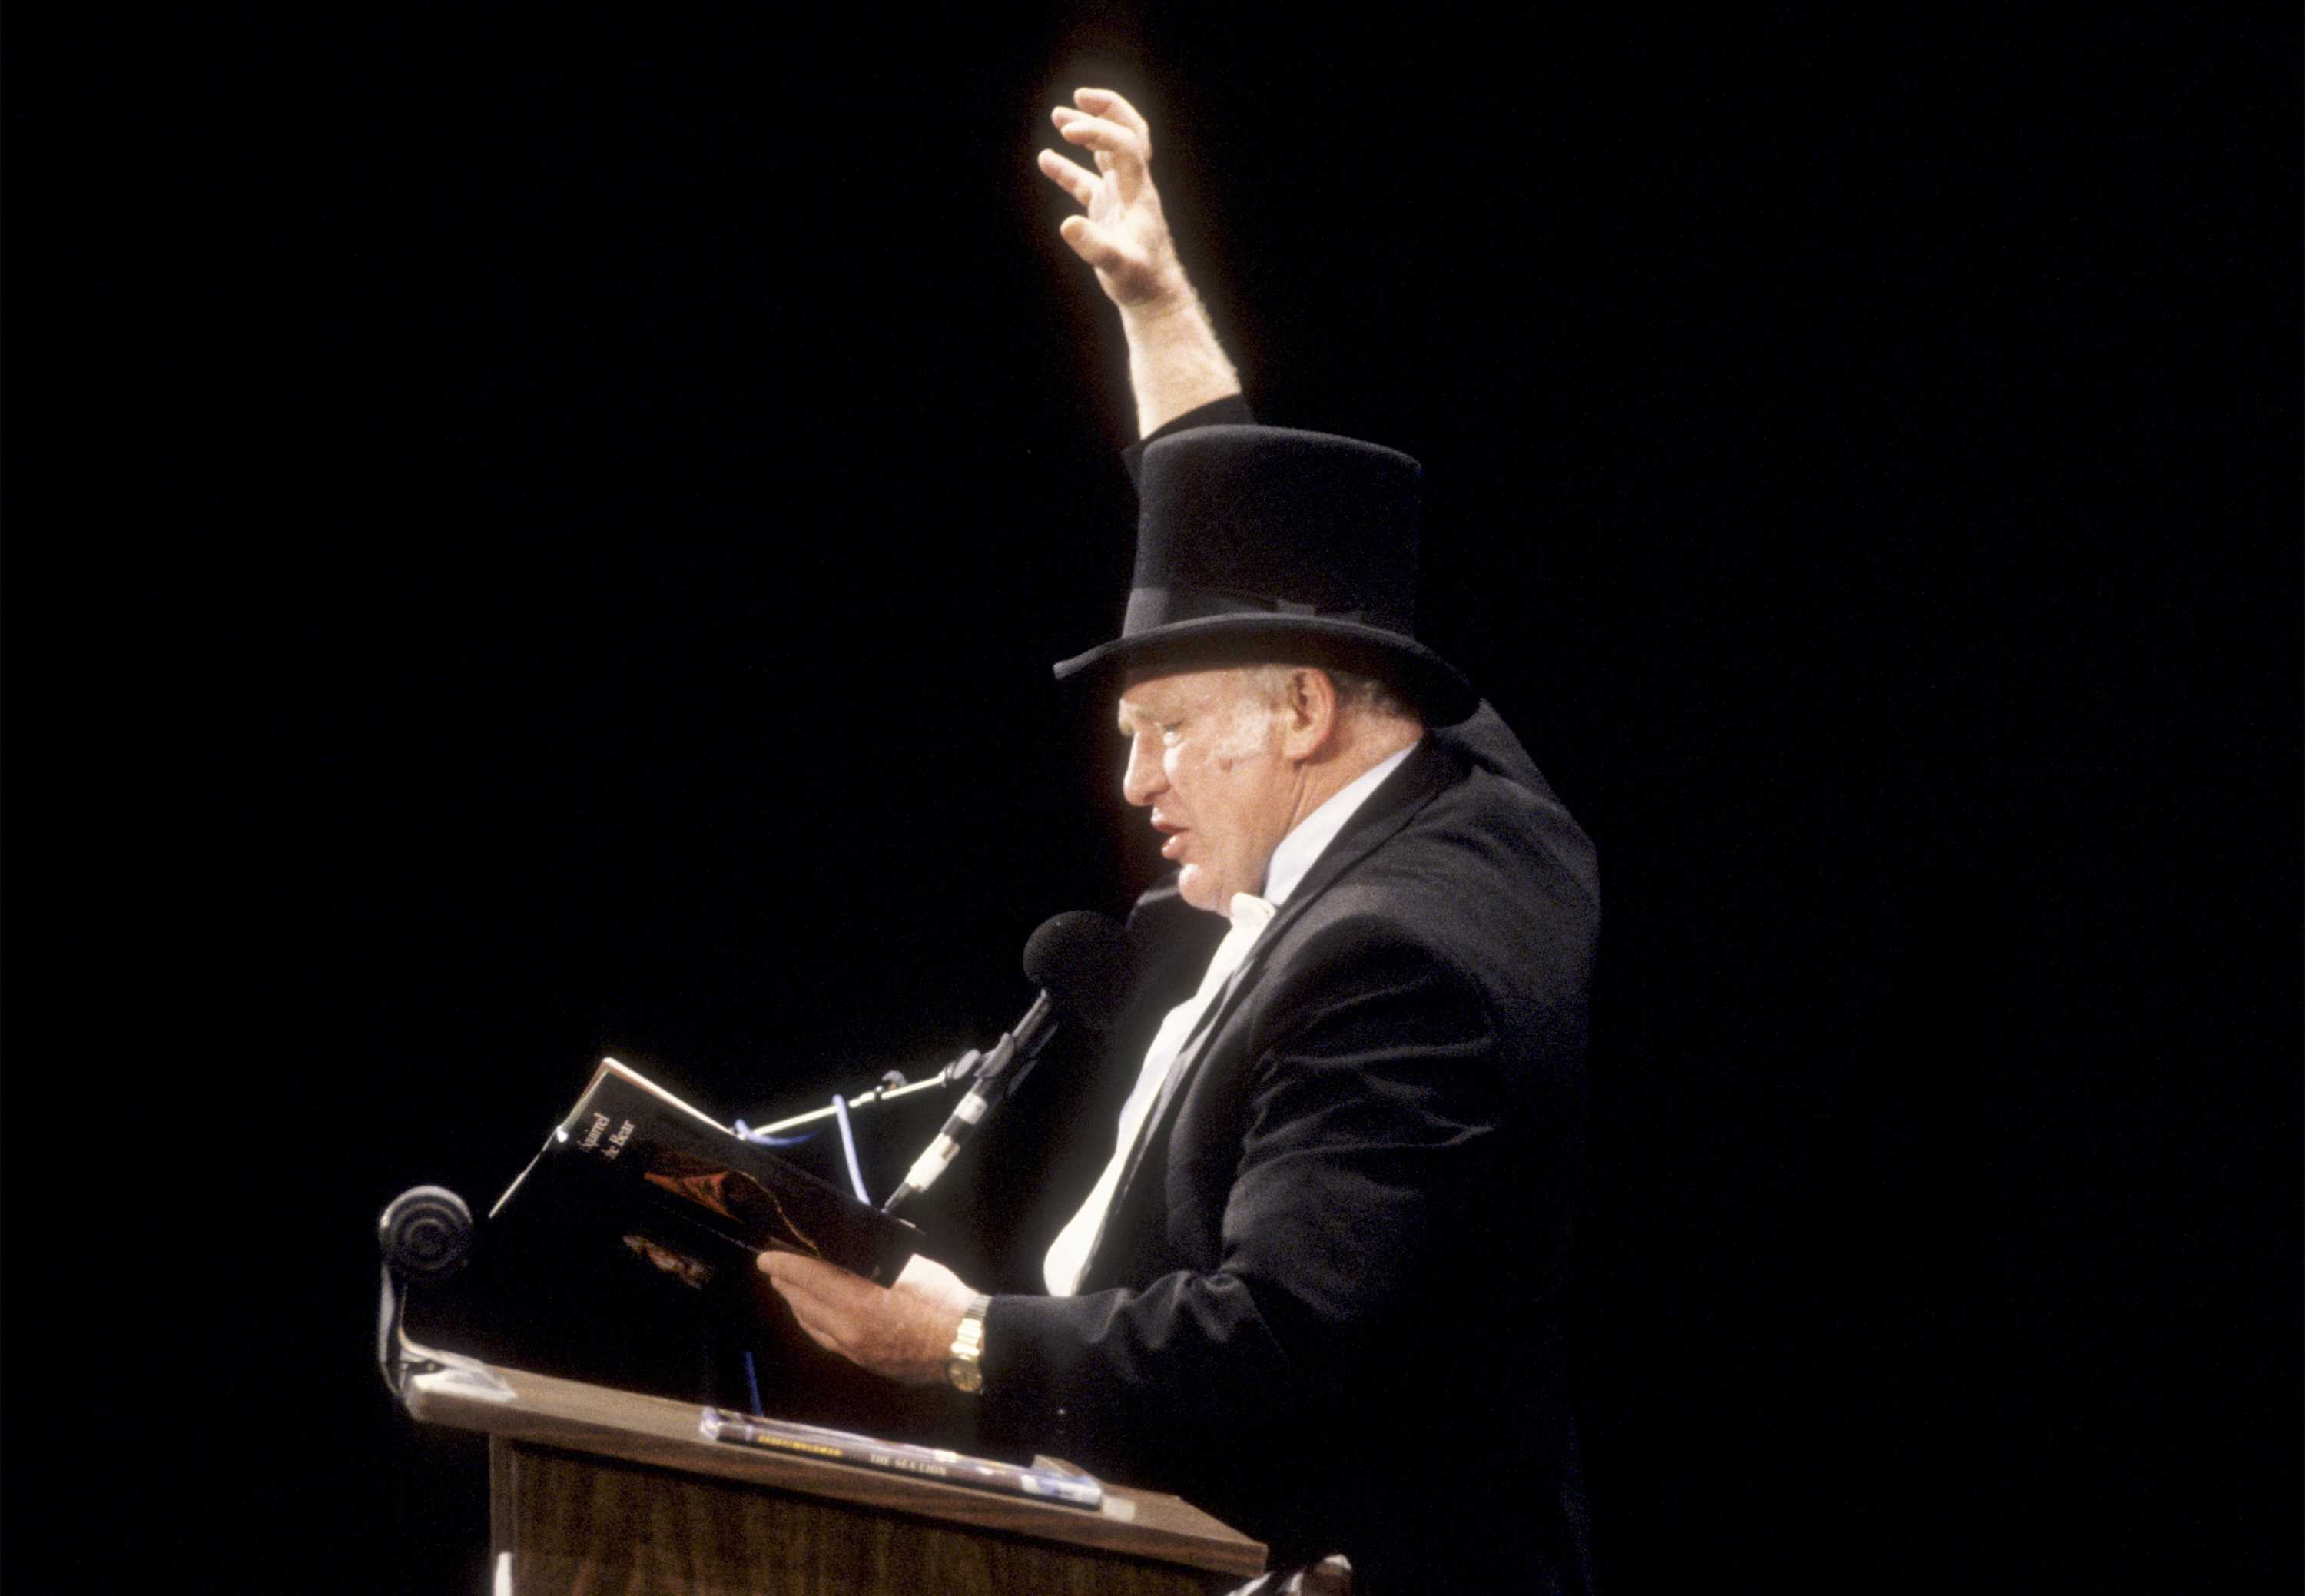 Author Ken Kesey at a lectern in 1991